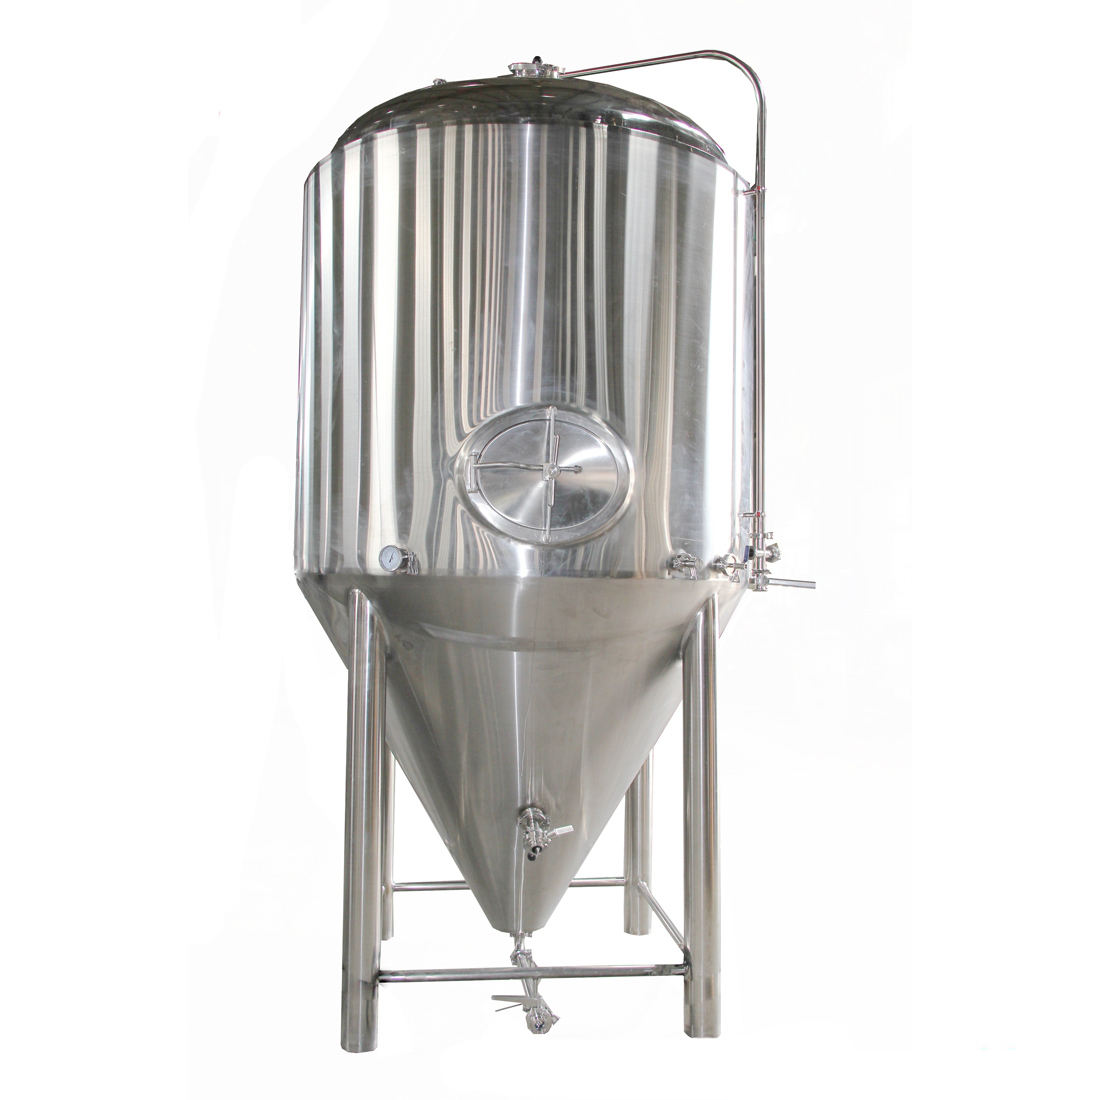 DYE 20bbl microbrewery plant equipment micro brewer micro brewery nano brewery equipment